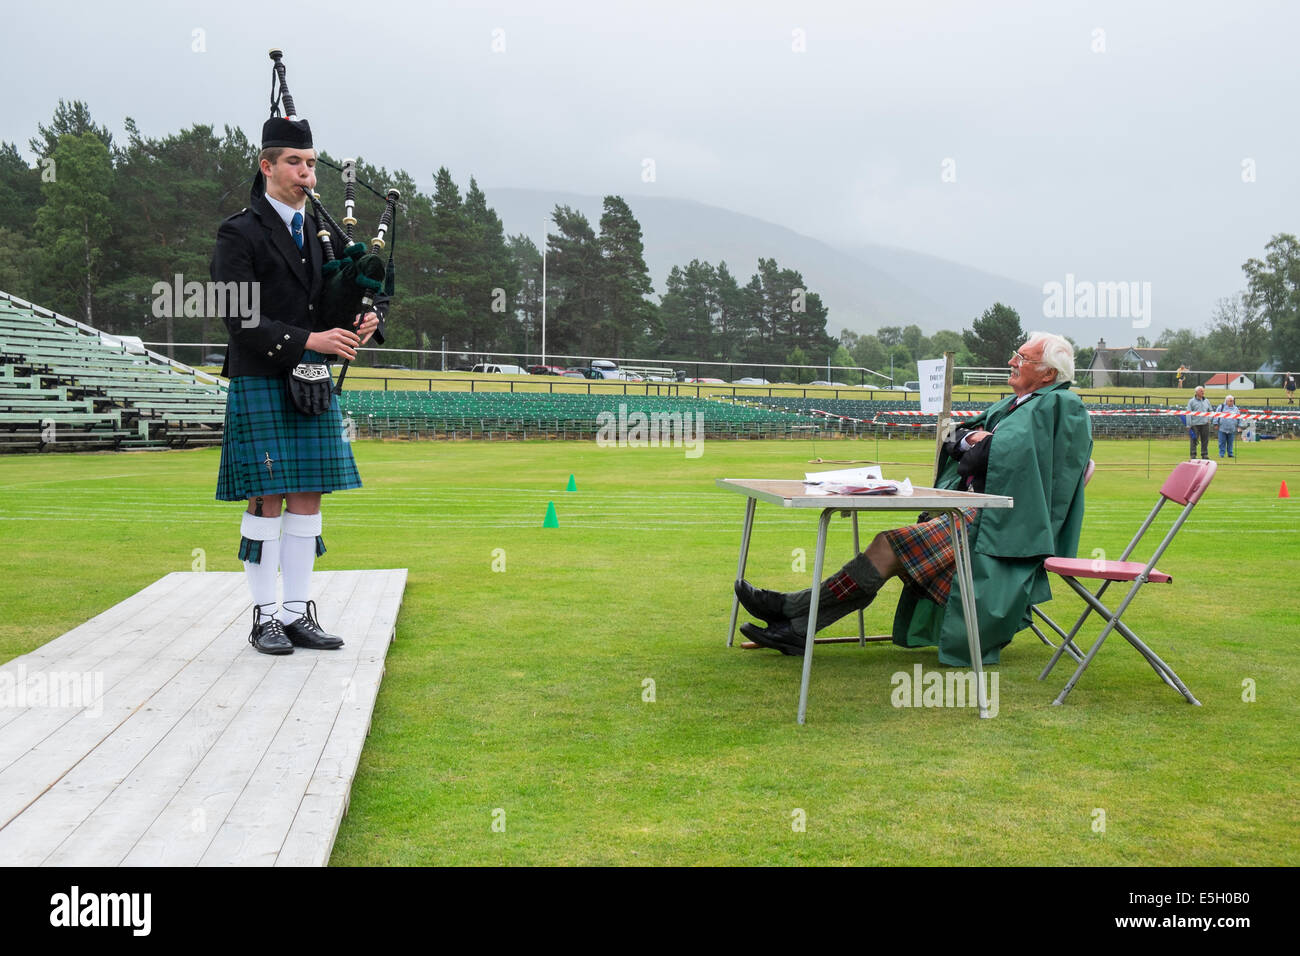 Piper et juge à la concurrence à la tuyauterie Solo Junior Braemar Highland Games en juillet en Ecosse, Photo Stock